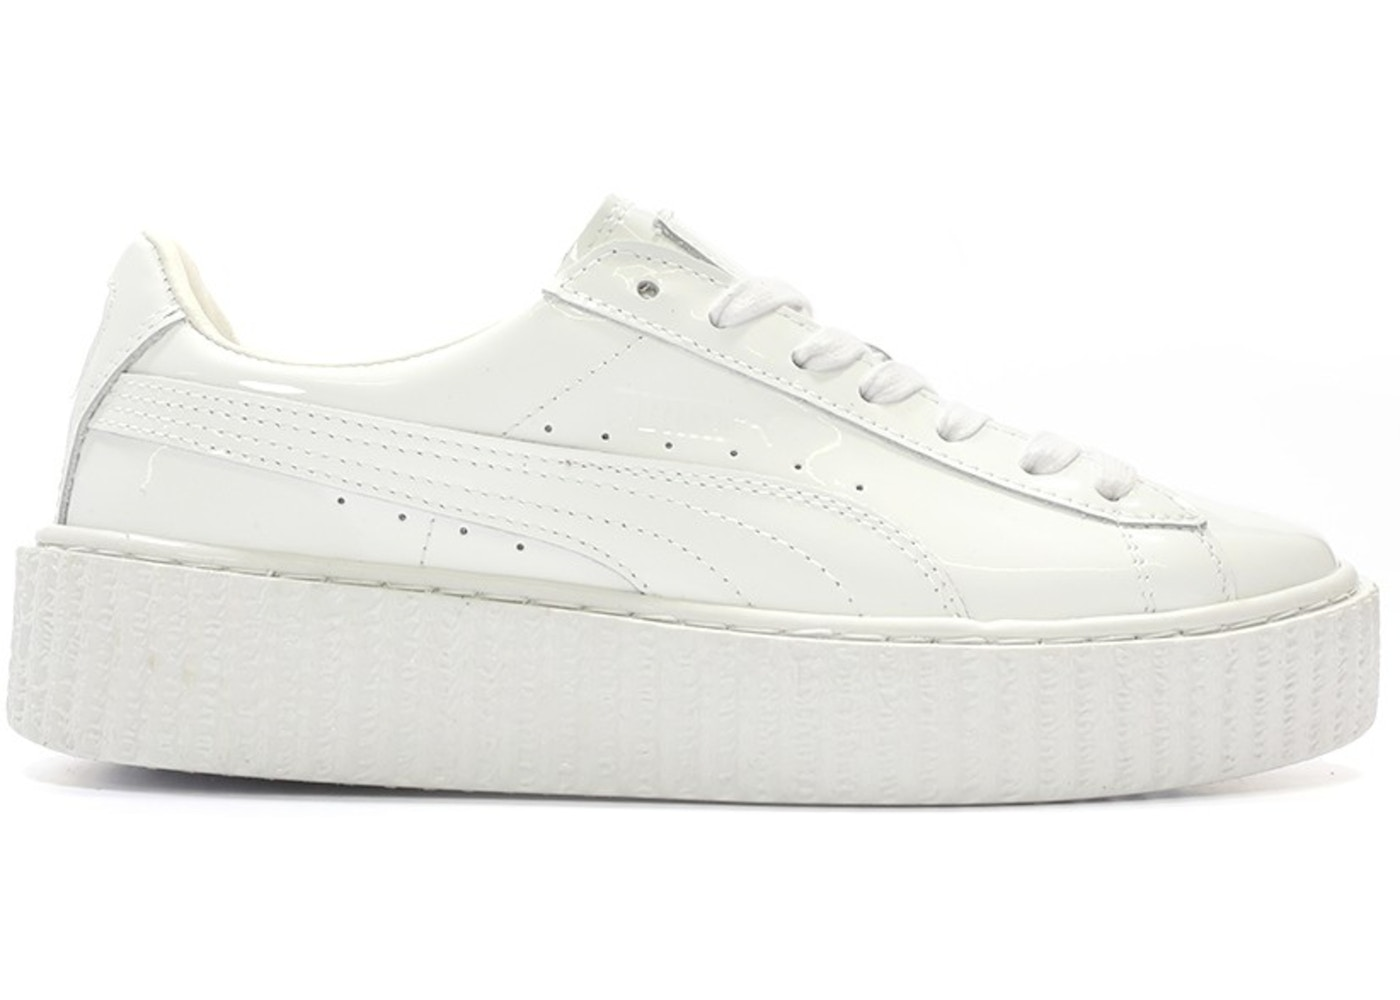 low priced 4de72 9e85a Puma Creepers Rihanna Fenty Glossy White (W)